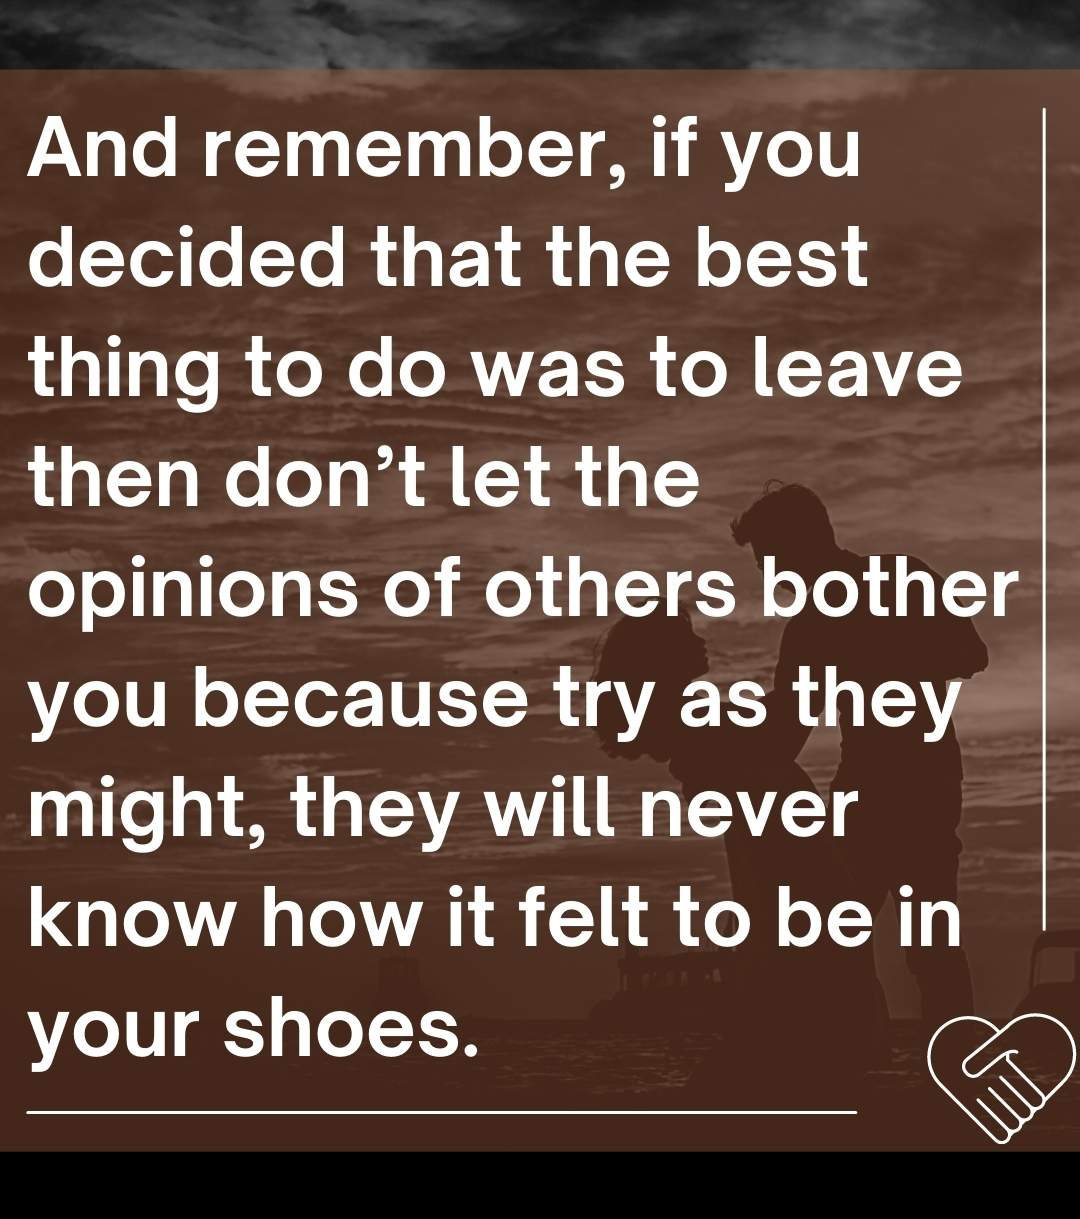 And remember, if you decided that the best thing to do was to leave then don't let the opinions of others bother you because try as they might, they will never know how it felt to be in your shoes.